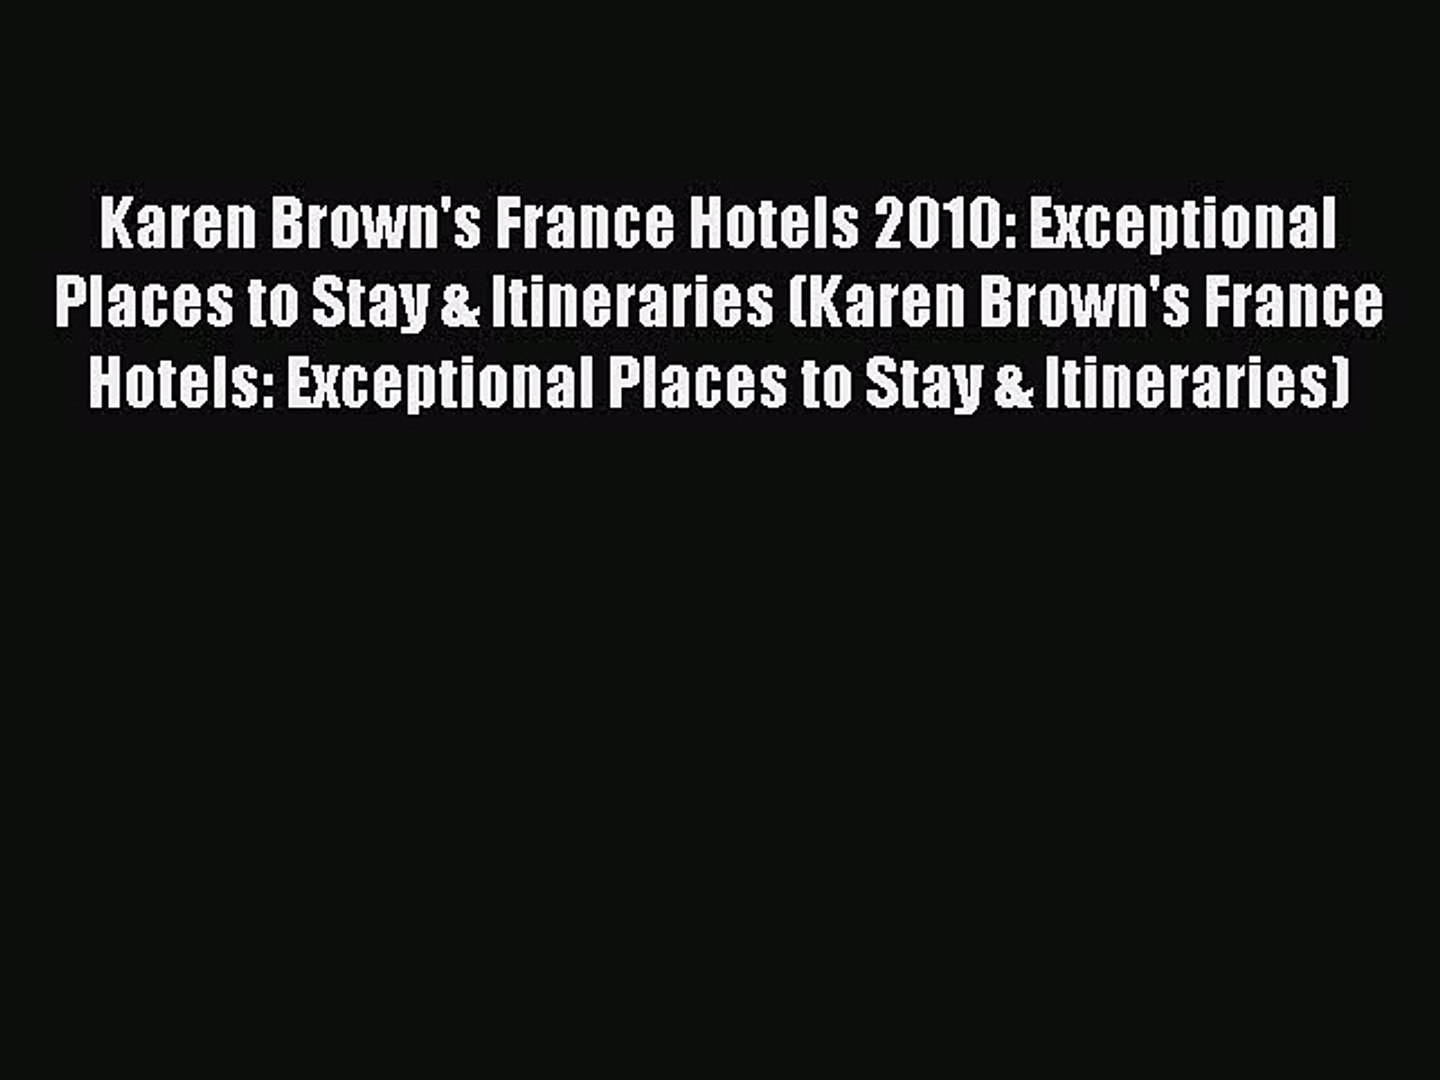 Download Karen Brown's France Hotels 2010: Exceptional Places to Stay & Itineraries (Karen